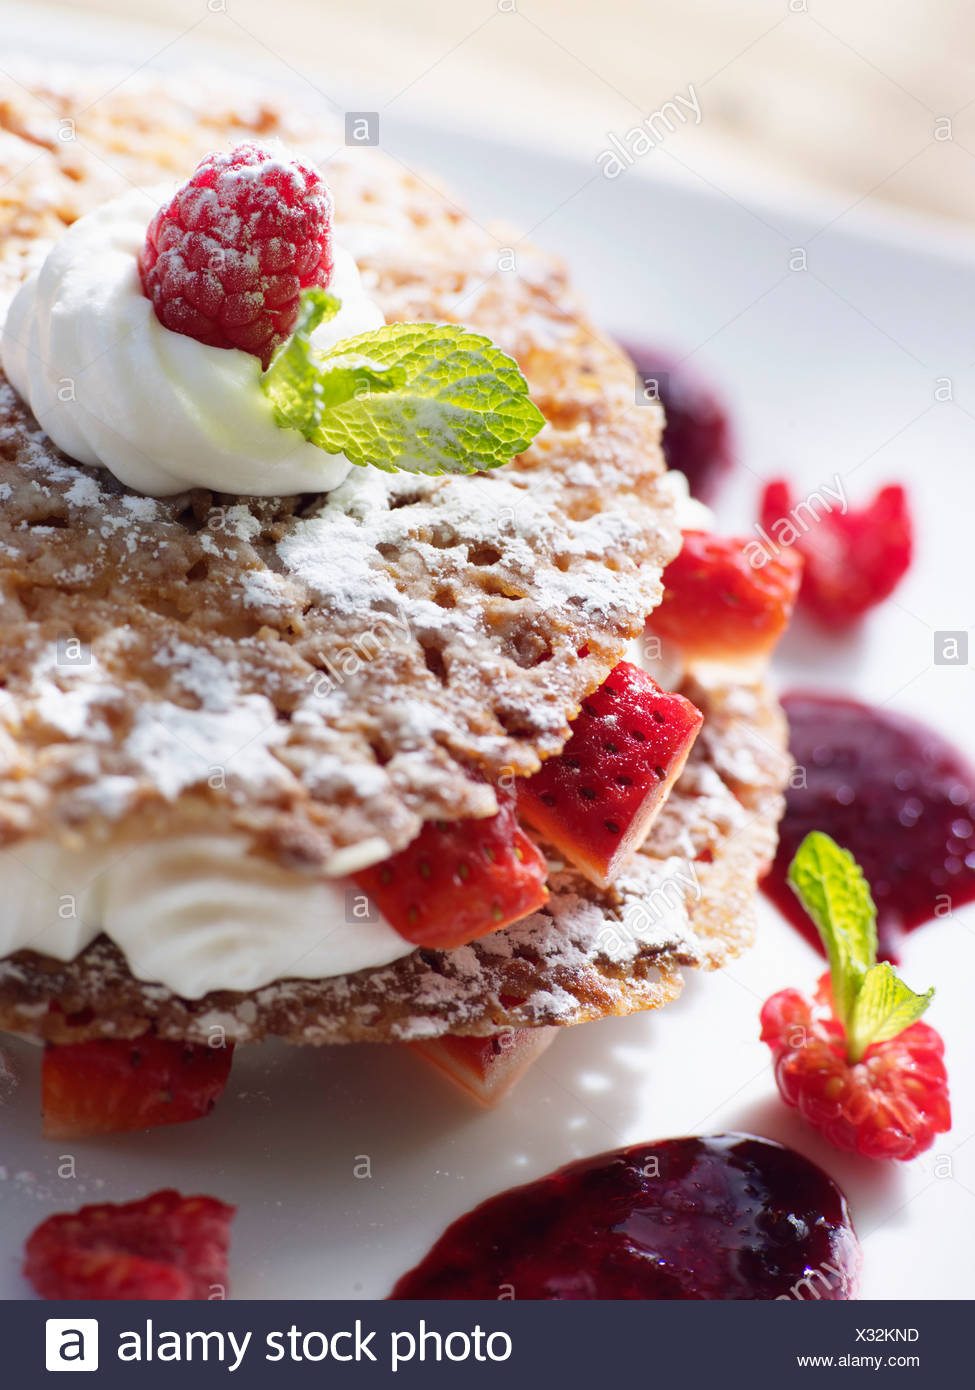 Strawberry and whipped cream Mille-feuille - Stock Image